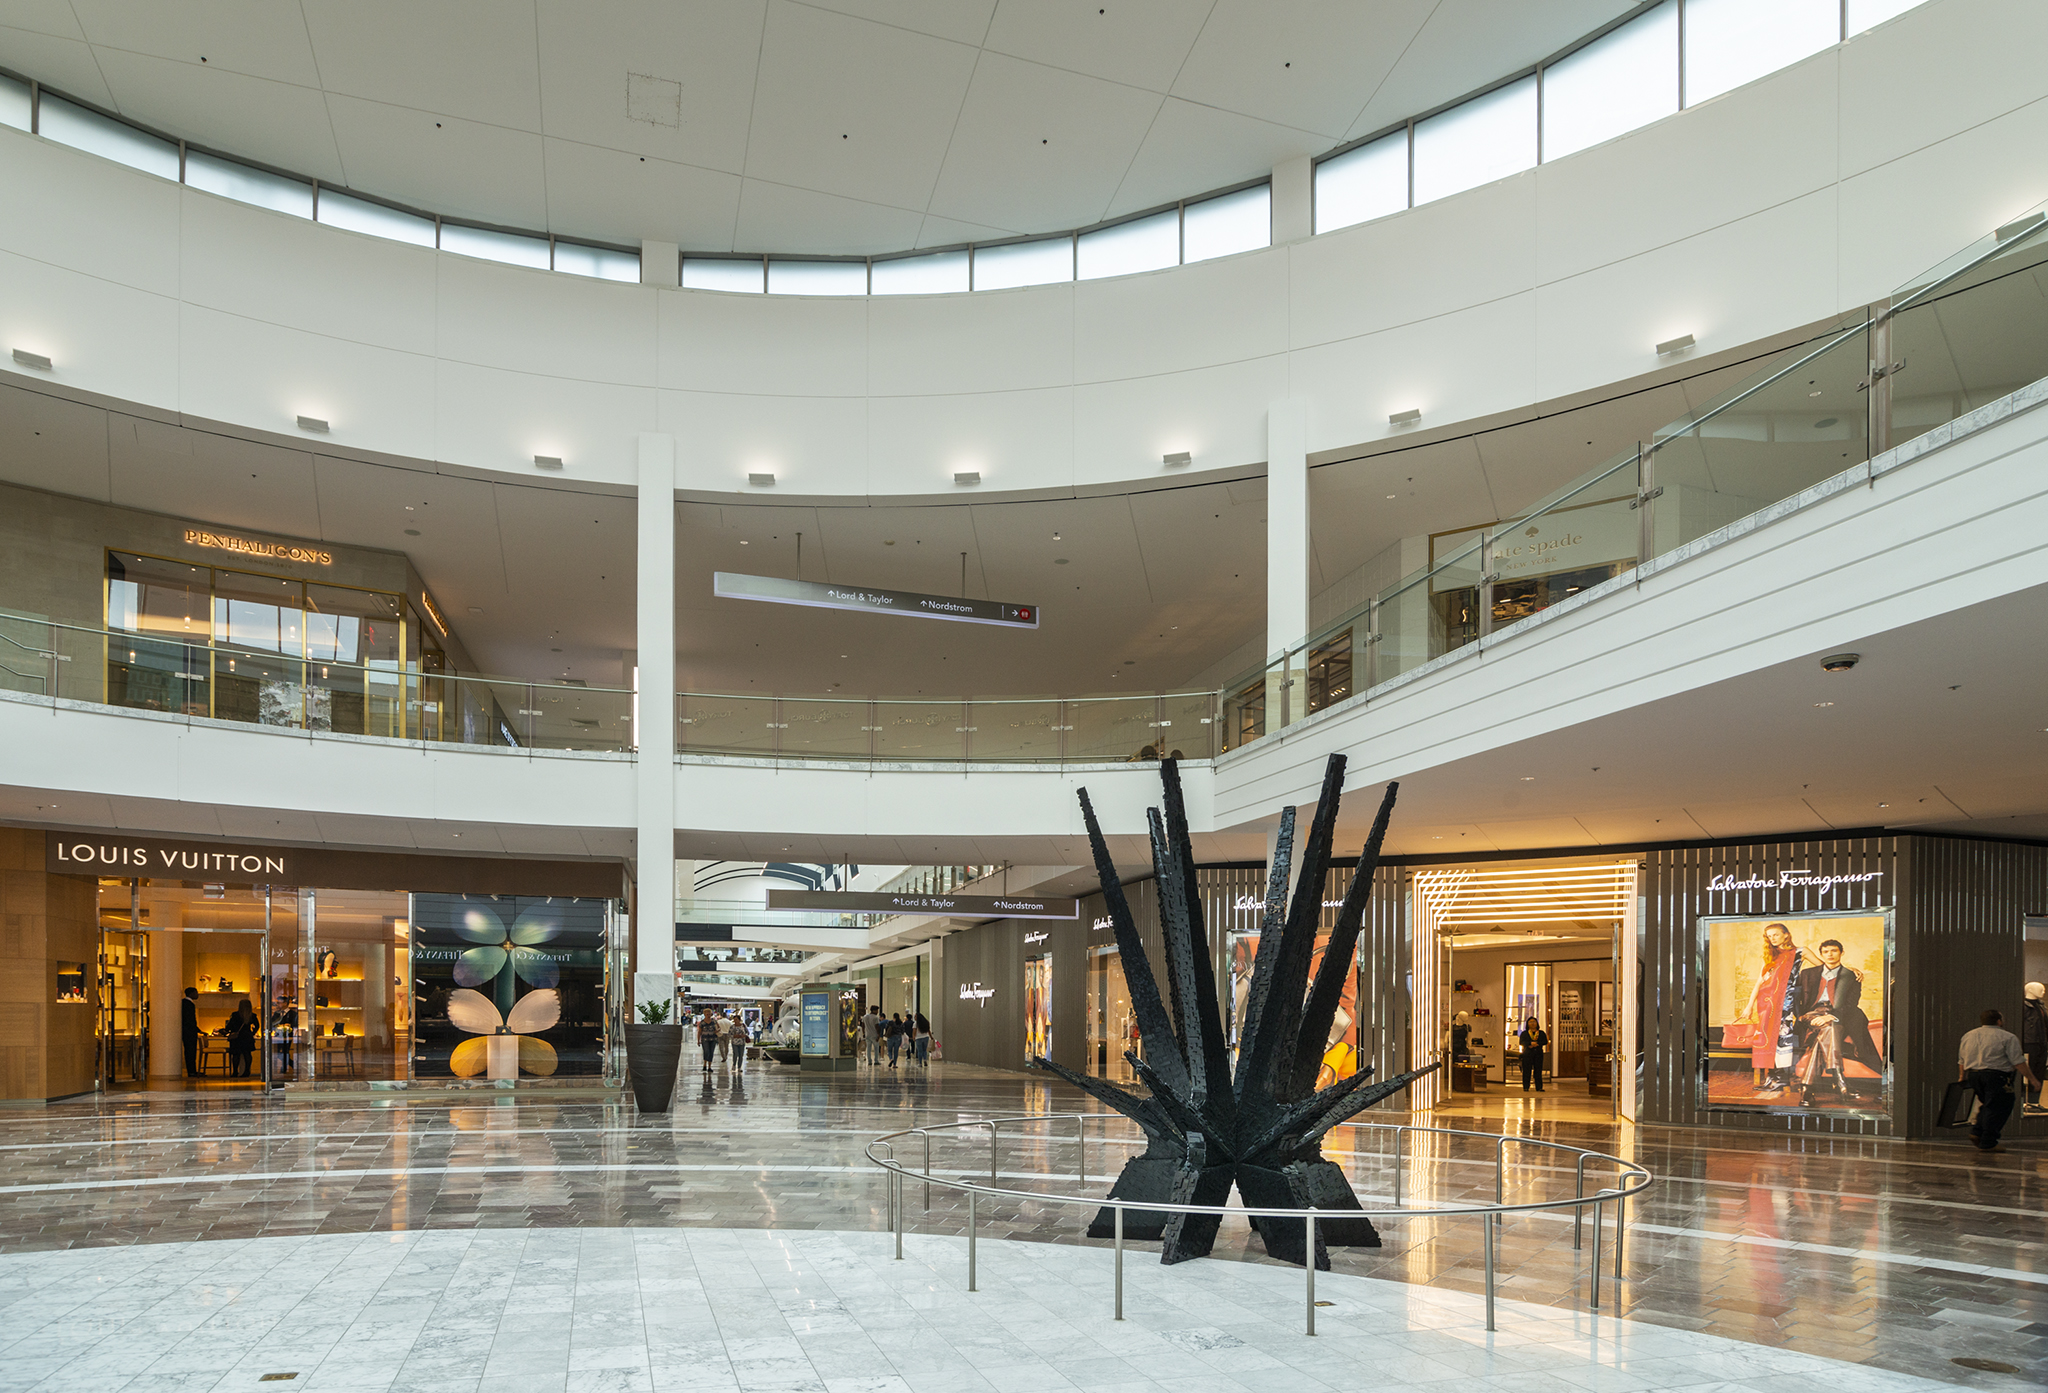 Art meets commerce at the increasingly upscale shopping hub.